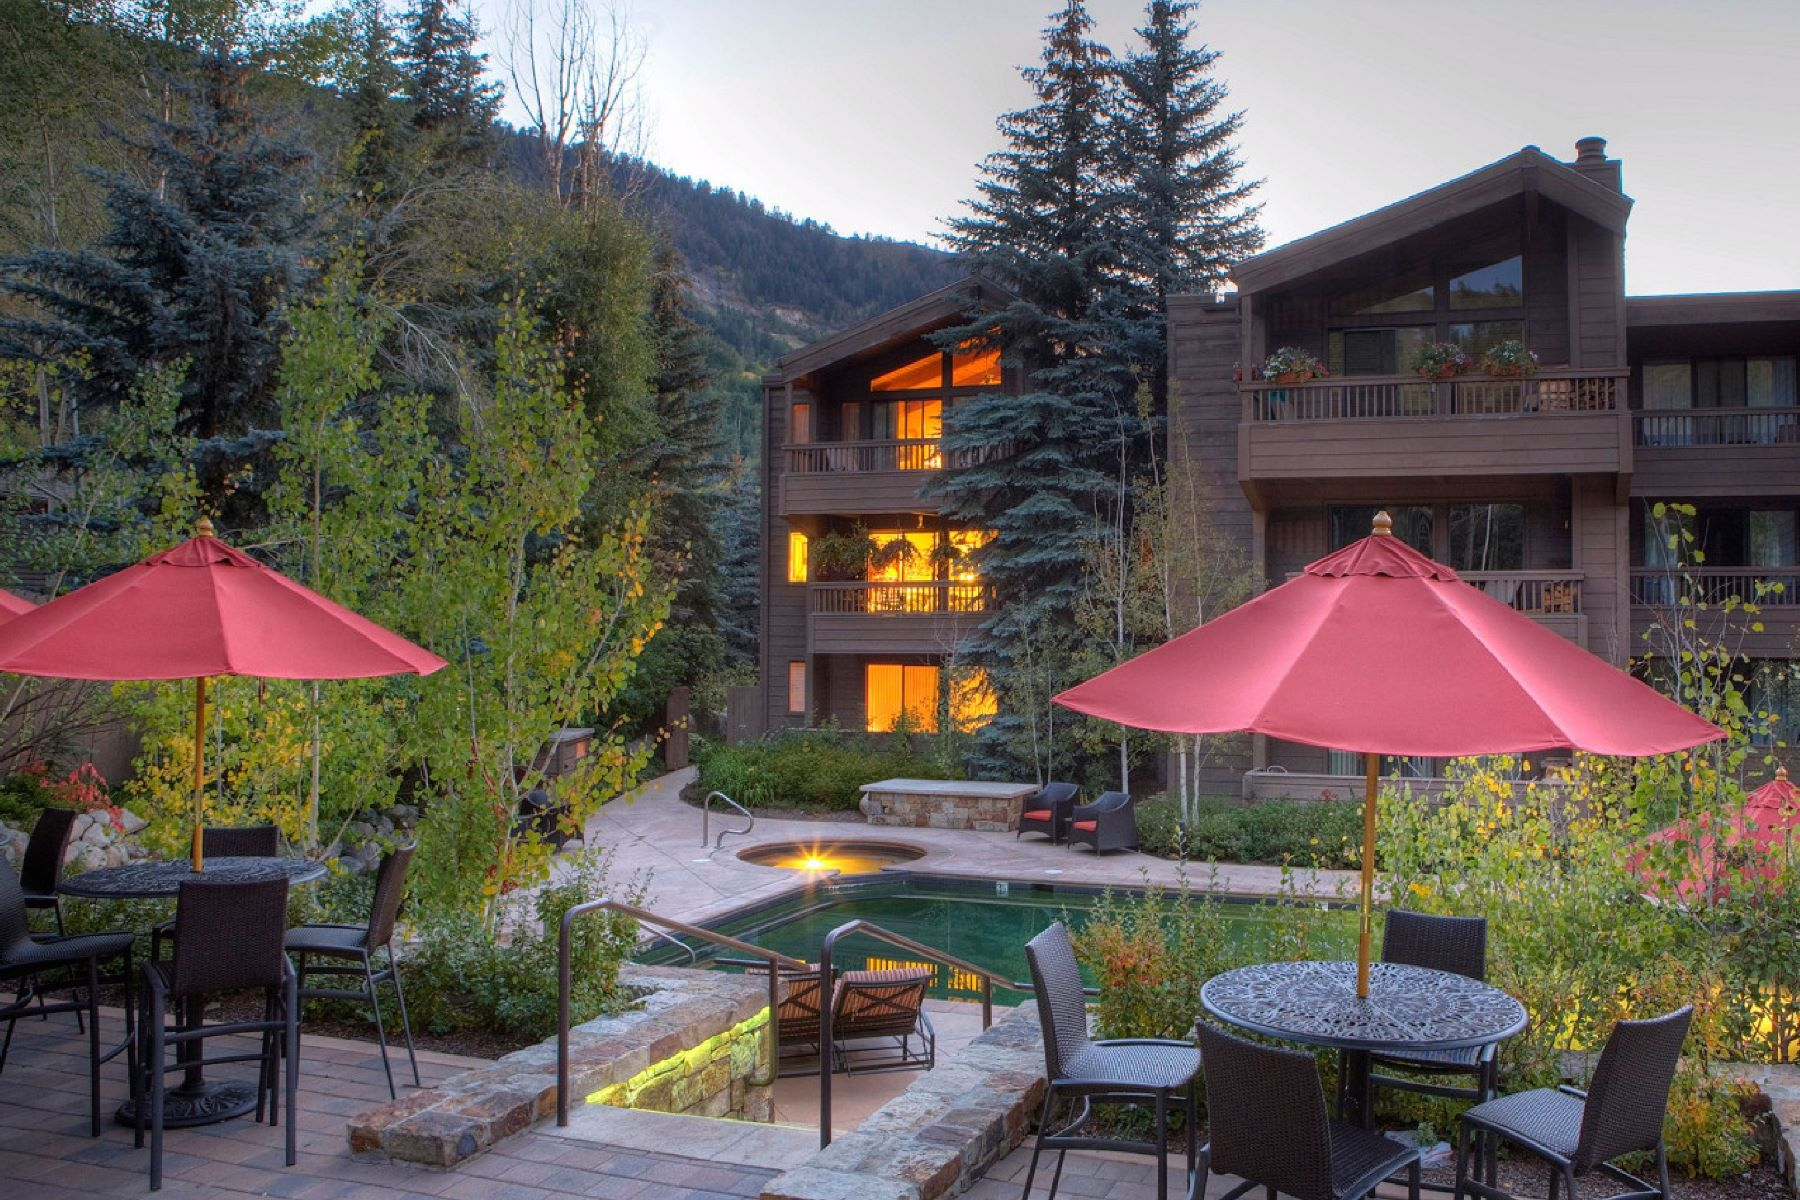 Condominium for Sale at The Gant 610 S West End Street B102, Aspen, Colorado, 81611 United States